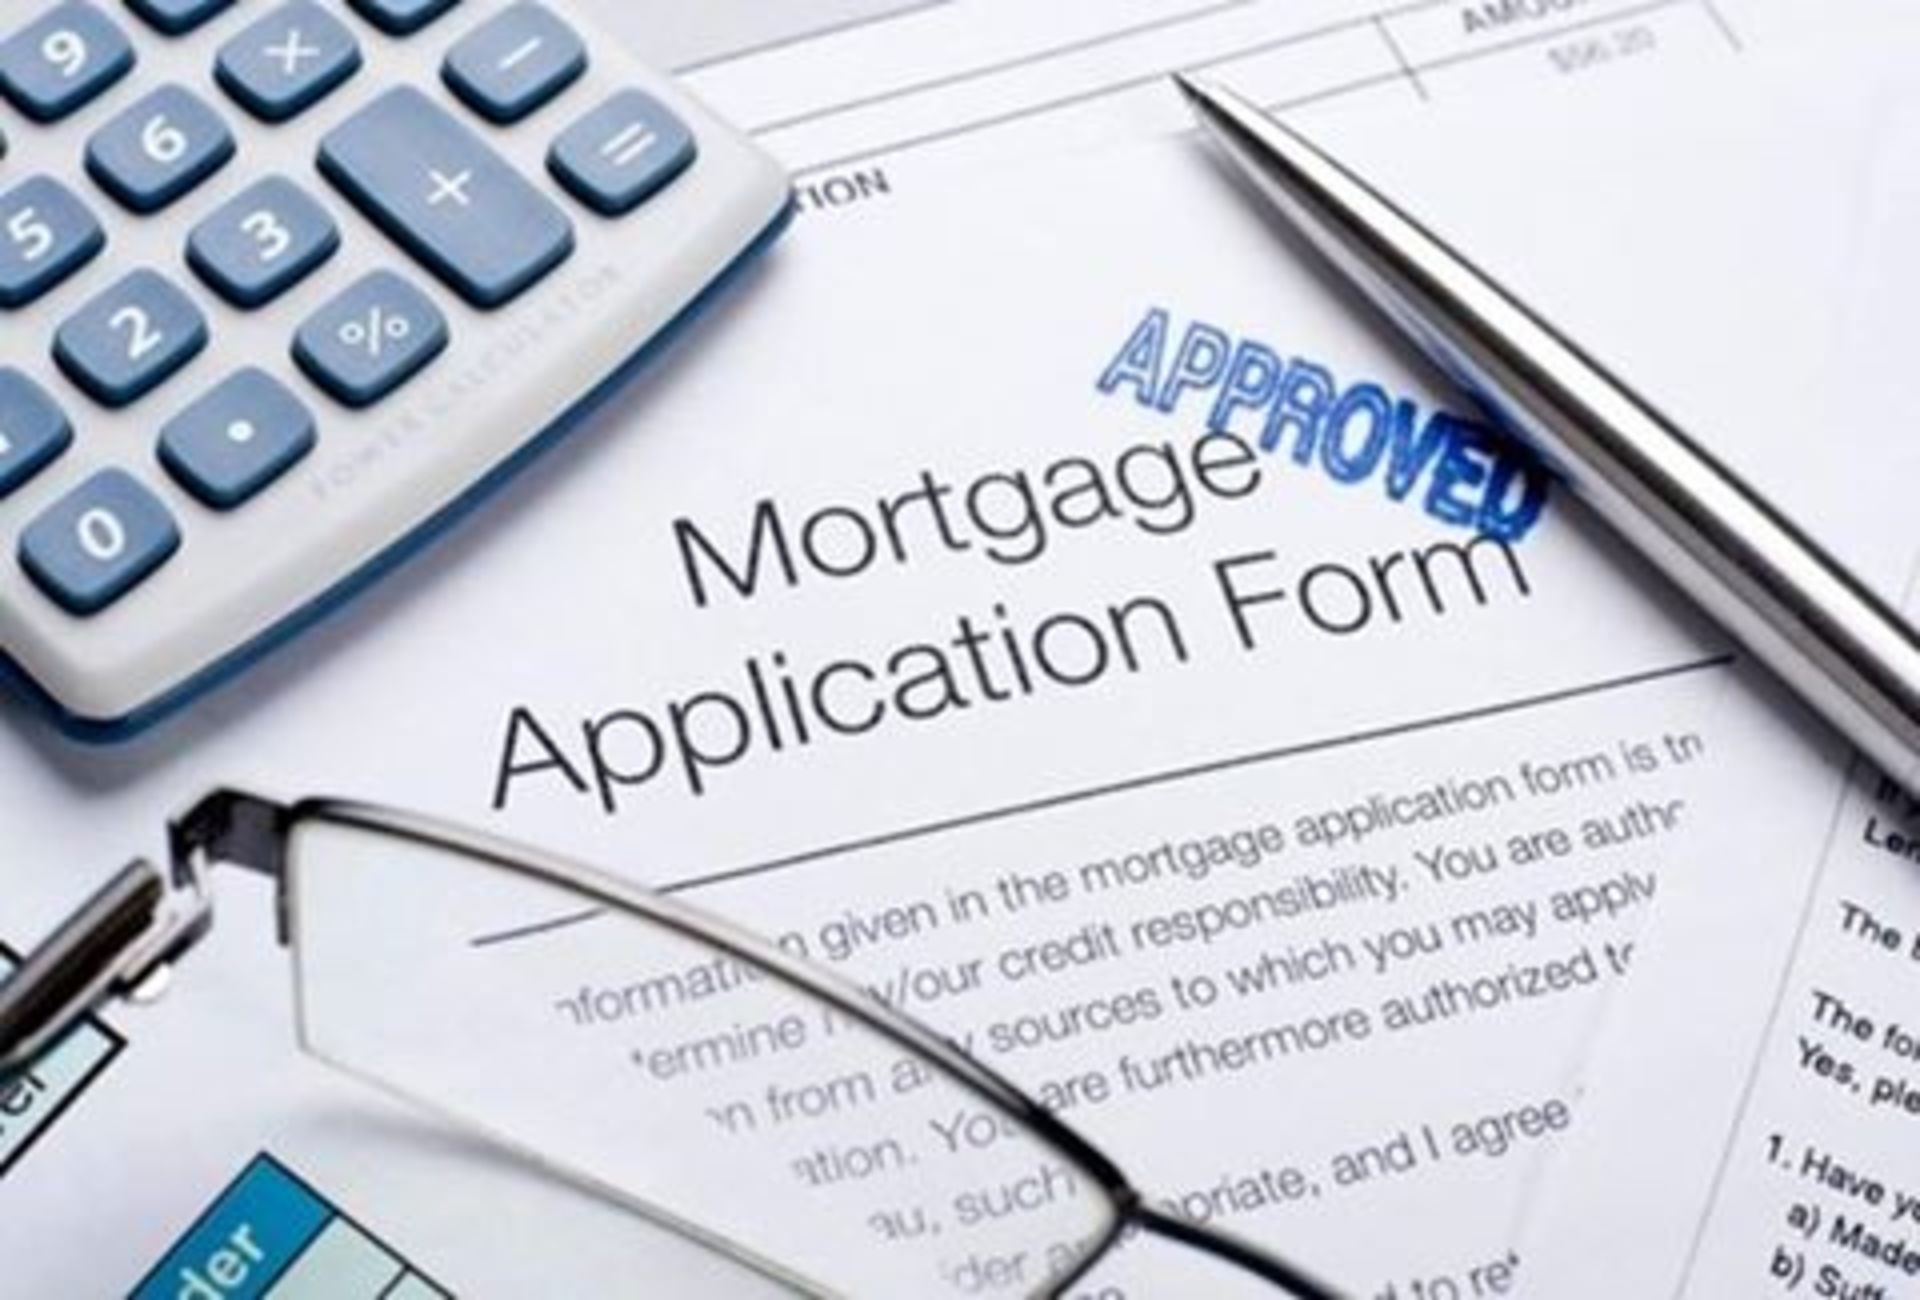 4 Things You Absolutely Should Not Do After You Apply for a Mortgage – The Richard Hopkinson Team